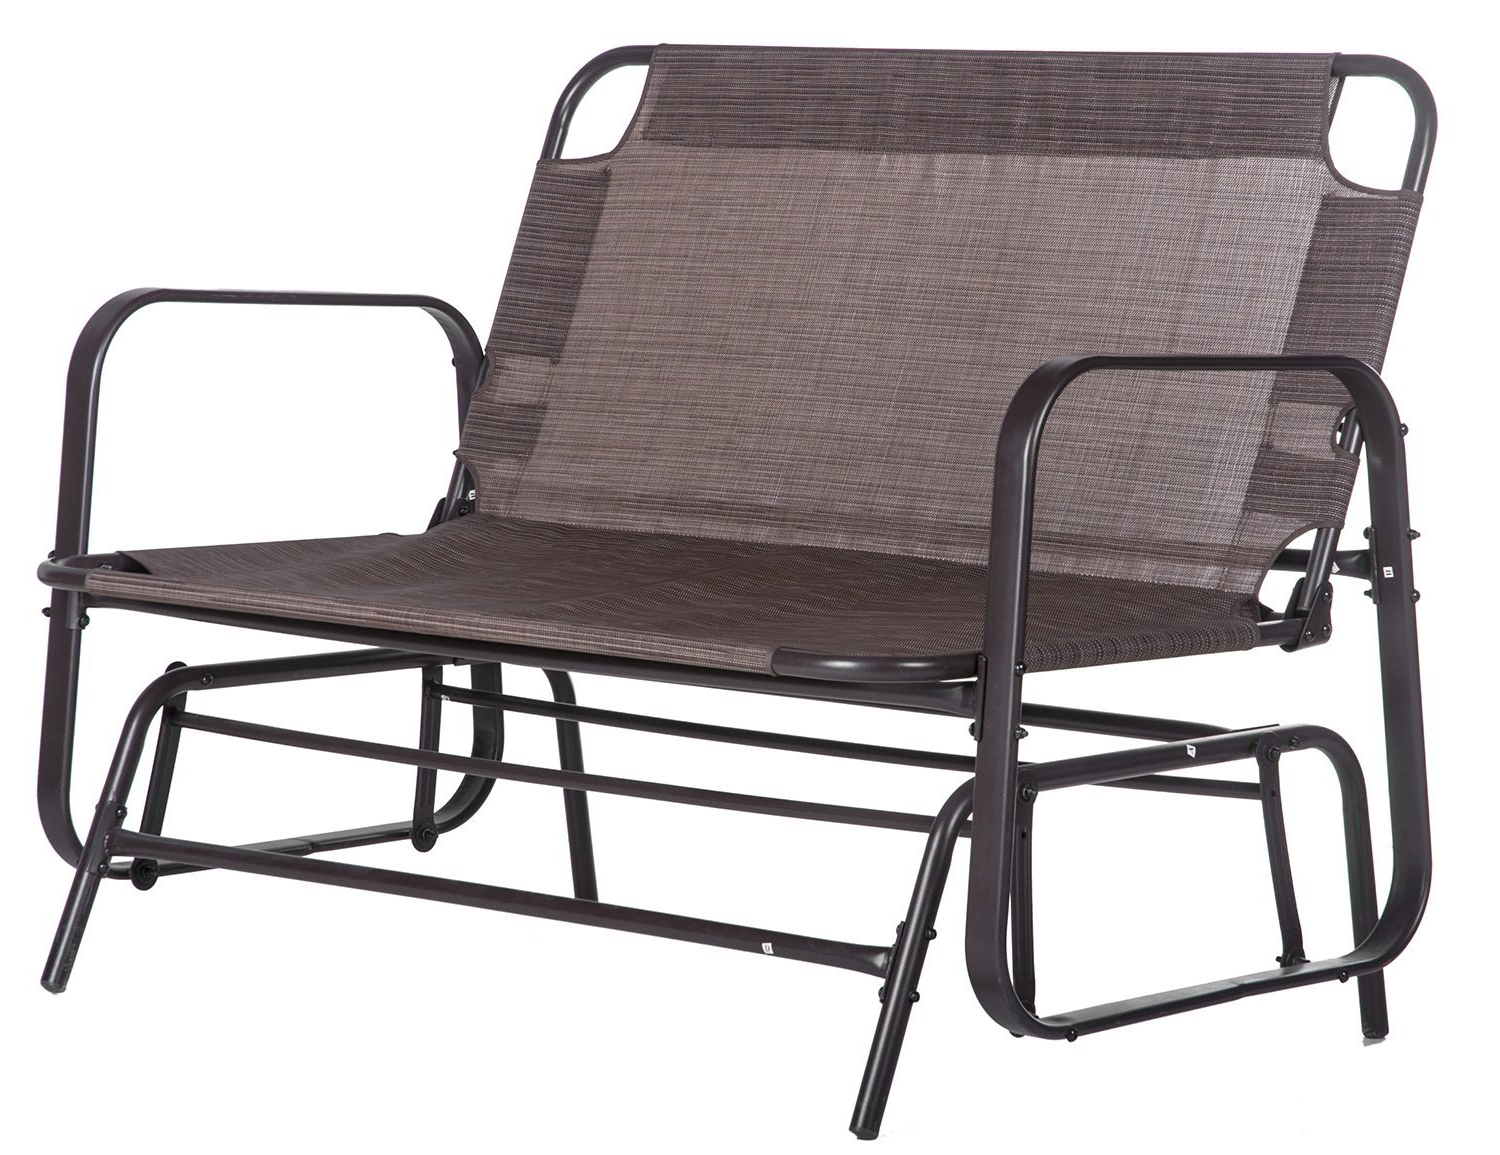 Newest Rocking Glider Benches With Cushions With Regard To Buy Merax Patio Loveseat Glider Rocking Chair Garden Outdoor (View 12 of 30)